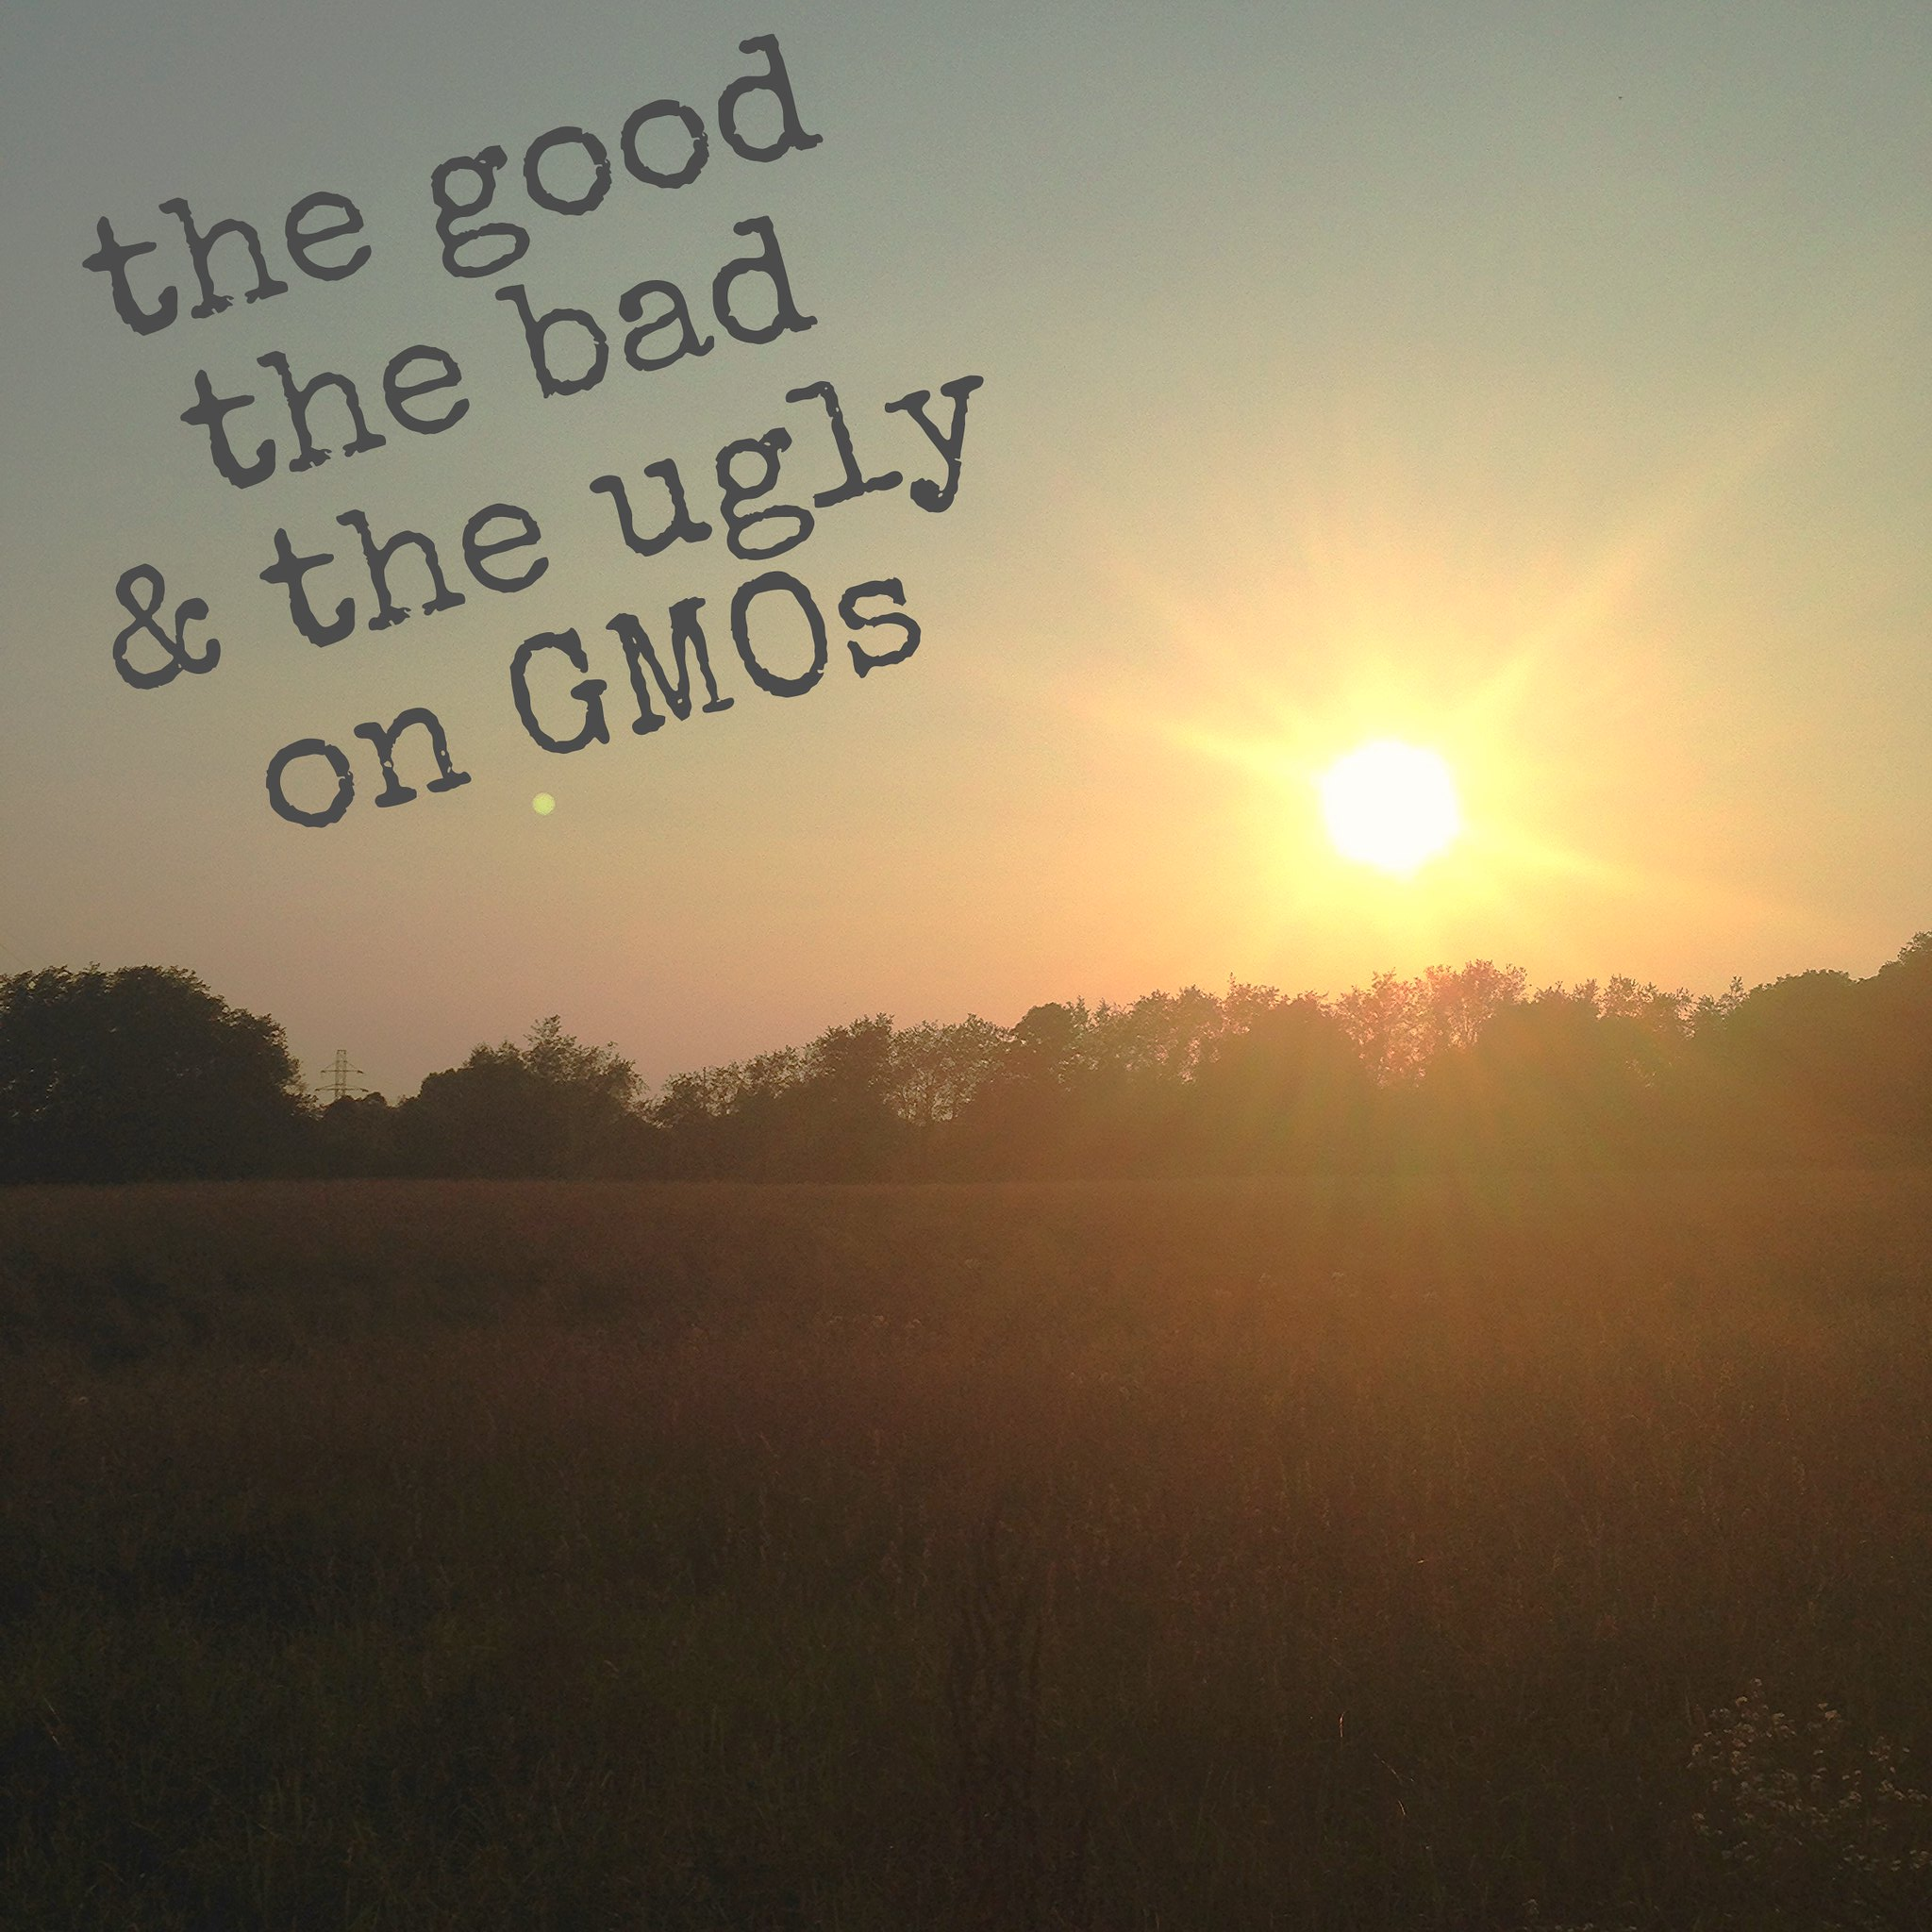 good bad and ugly on GMOs